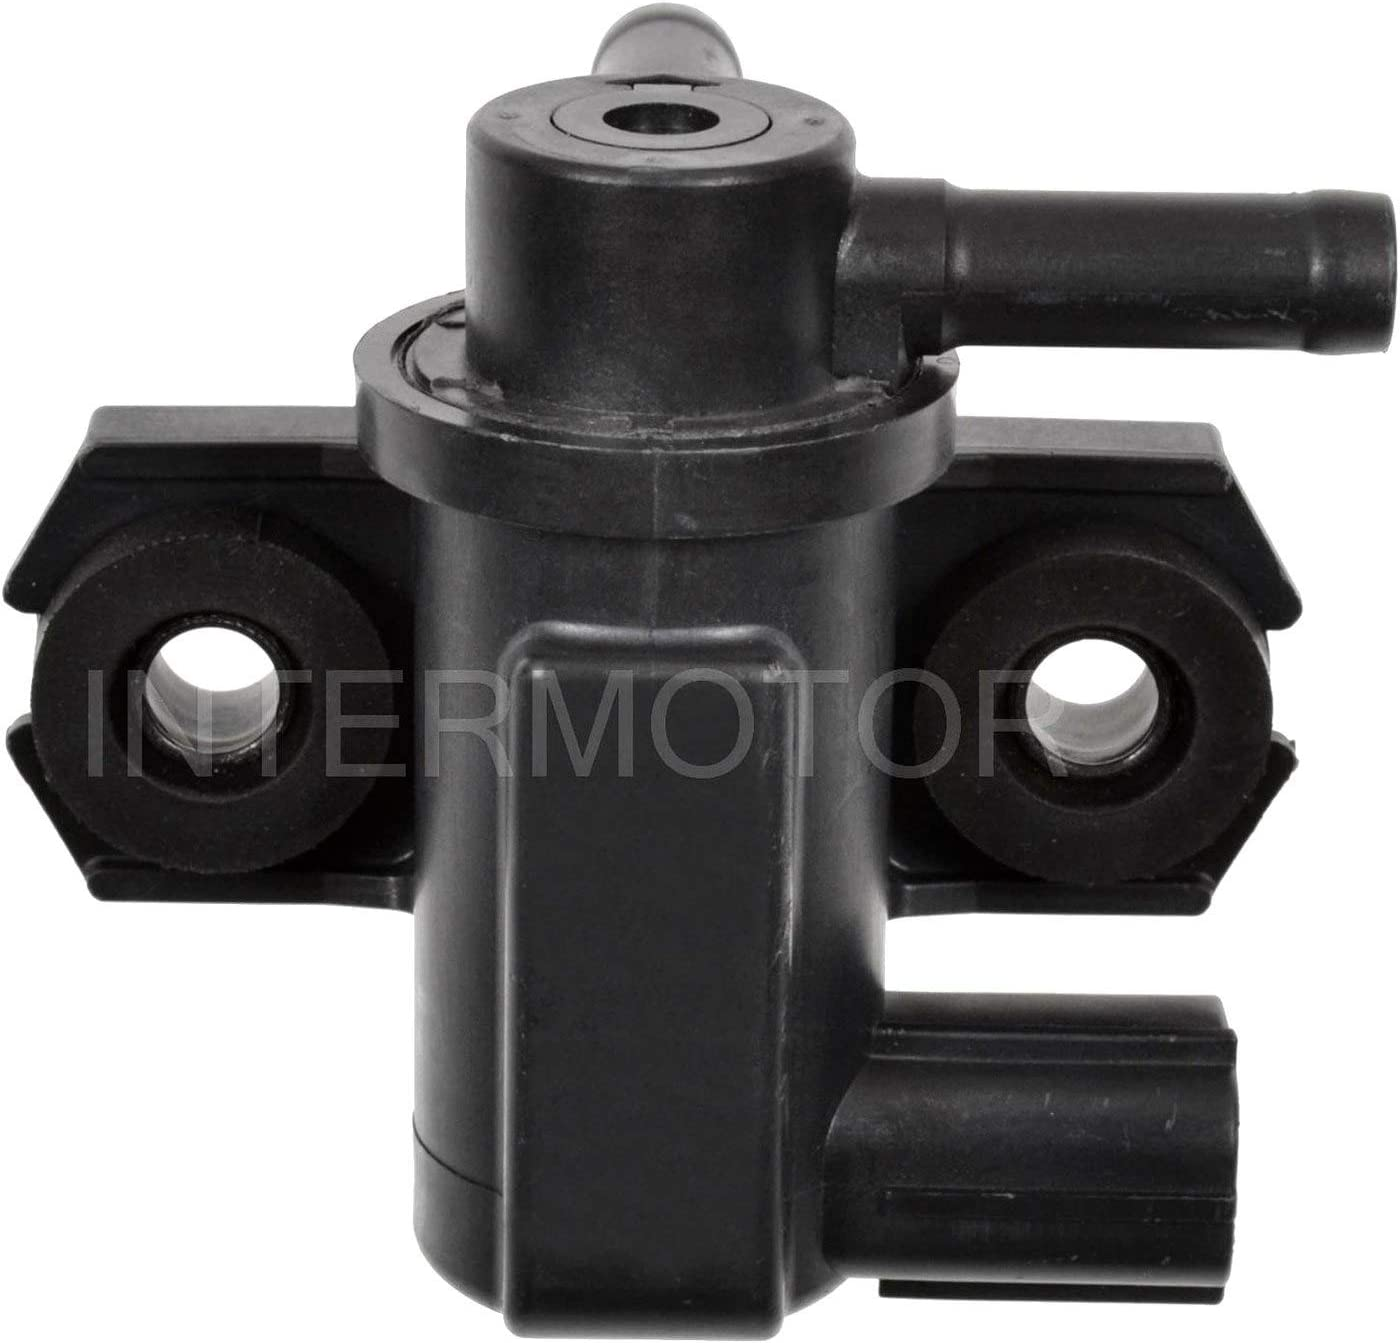 Standard Selling and selling Motor Products CP684 sale Canister Purge Solenoid